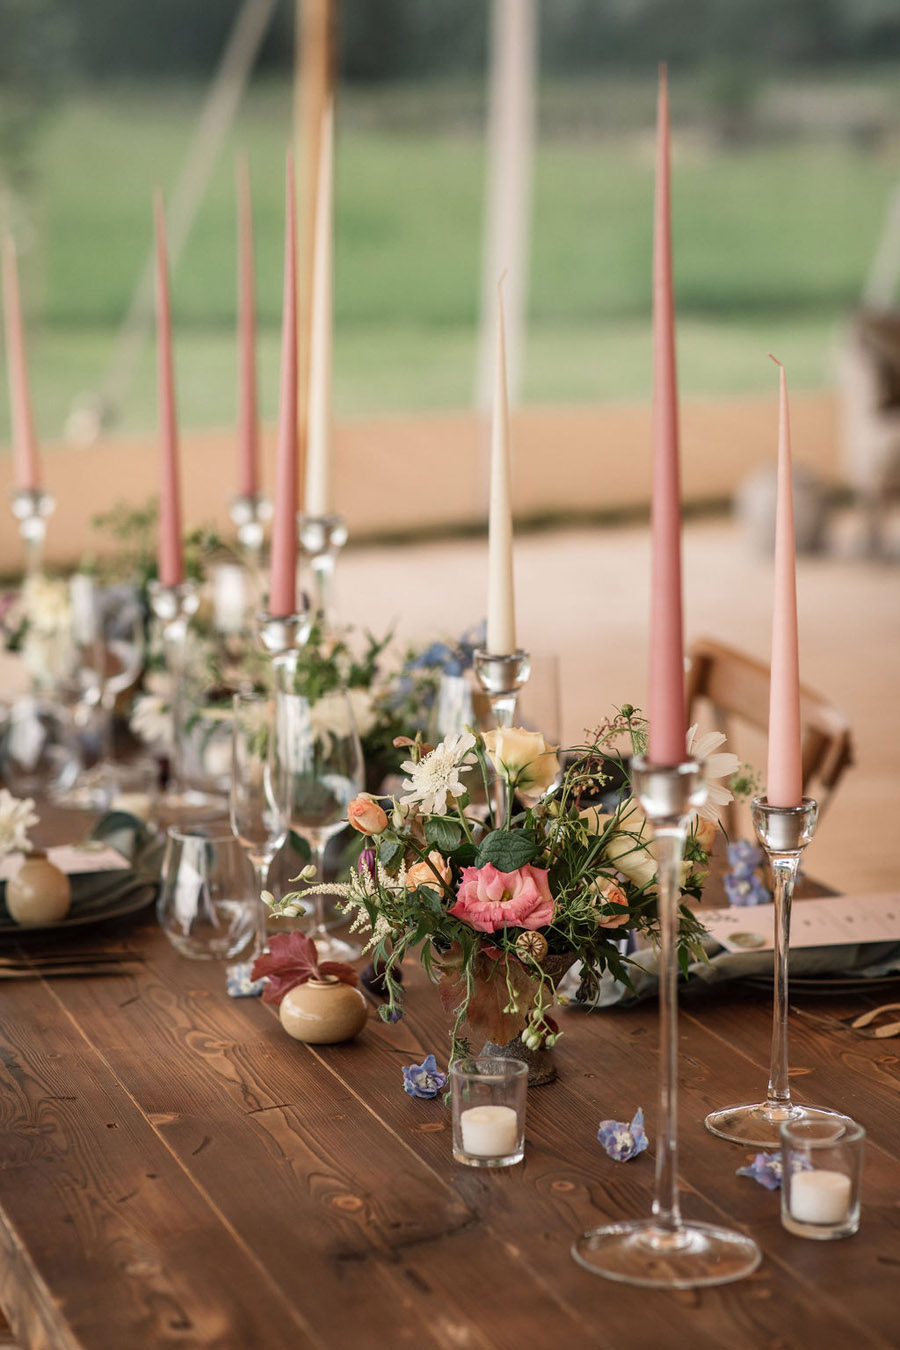 Evening sunset wedding inspiration at Willow Grange Farm, with Becky Harley Photography (11)